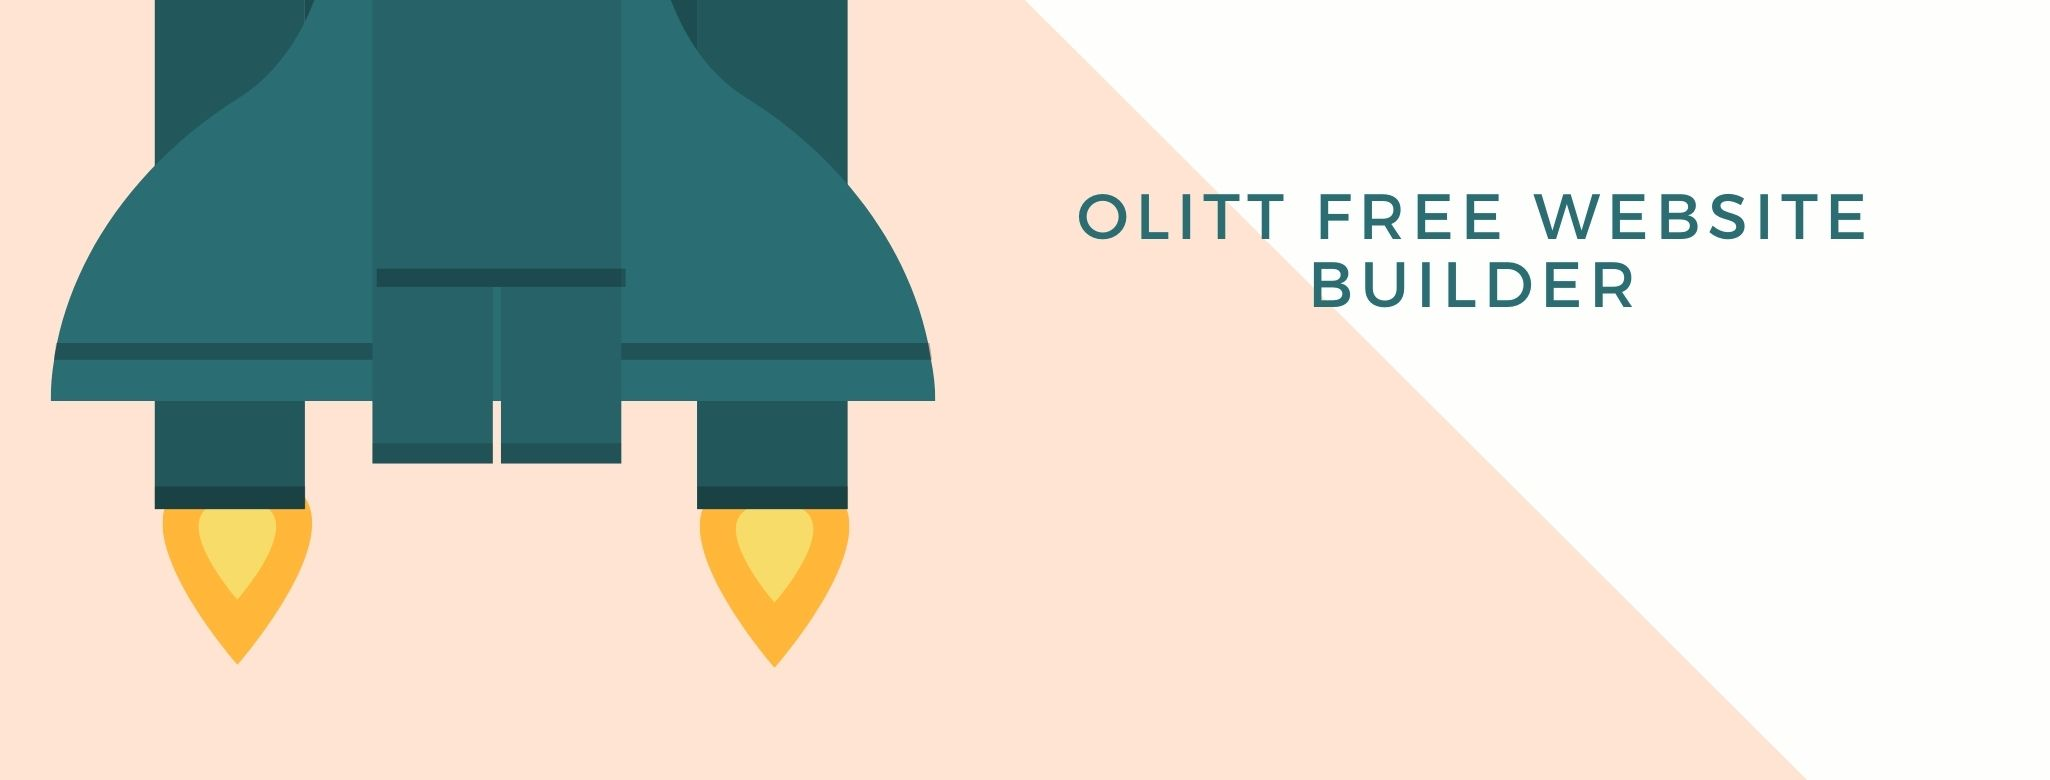 Olitt Free Website Builder